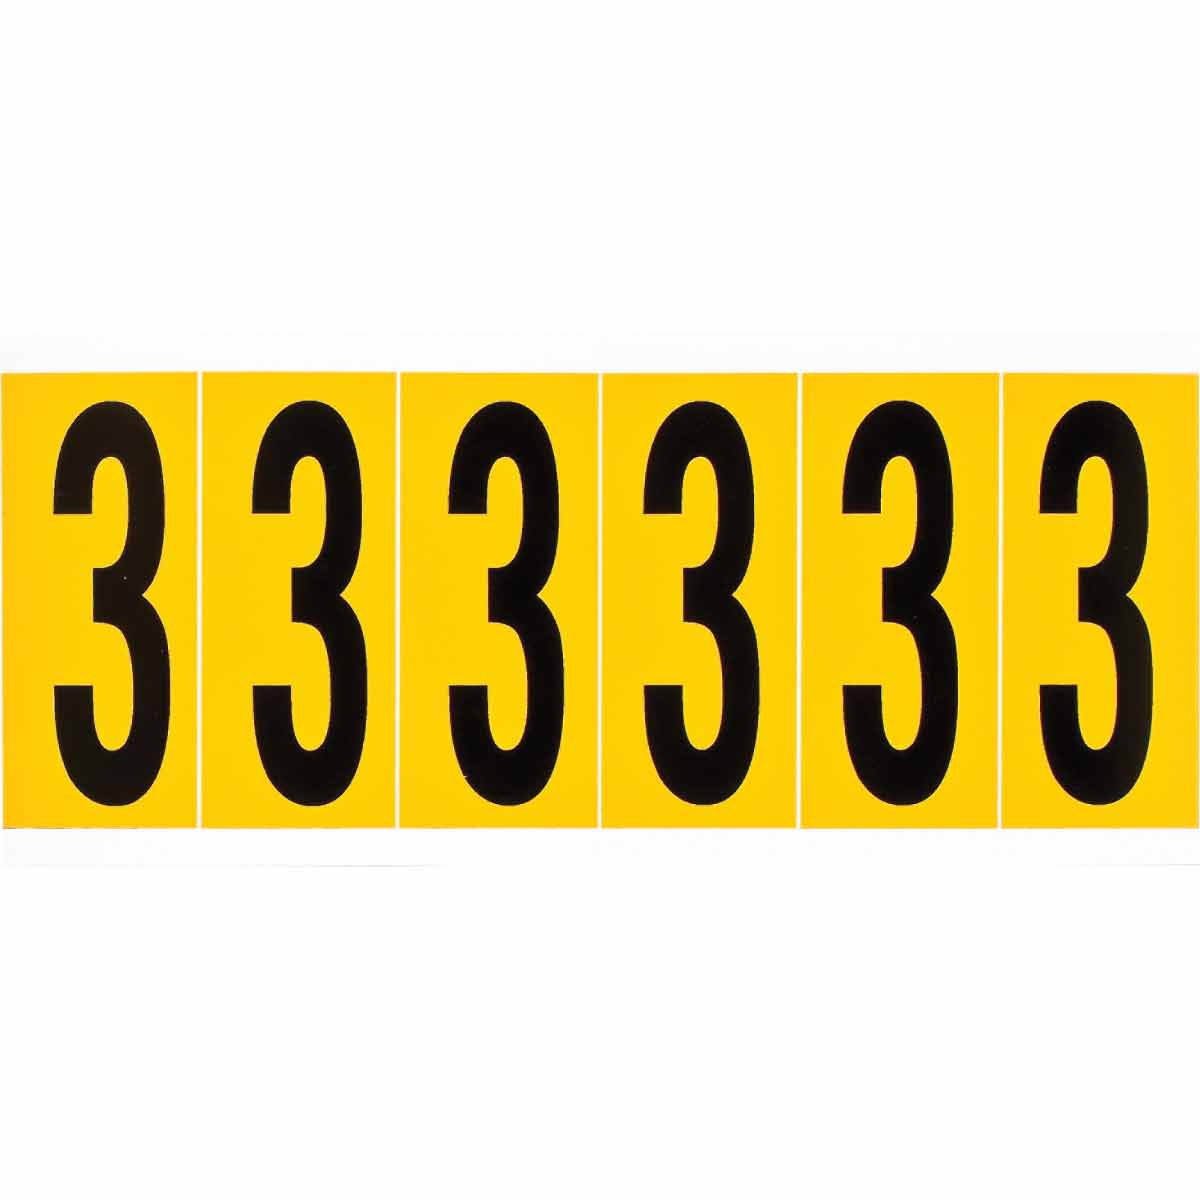 Brady® 1550-3 Non-Reflective Standard Number Label, 2.938 in H Black 3 Character, Yellow Background, B-946 Vinyl